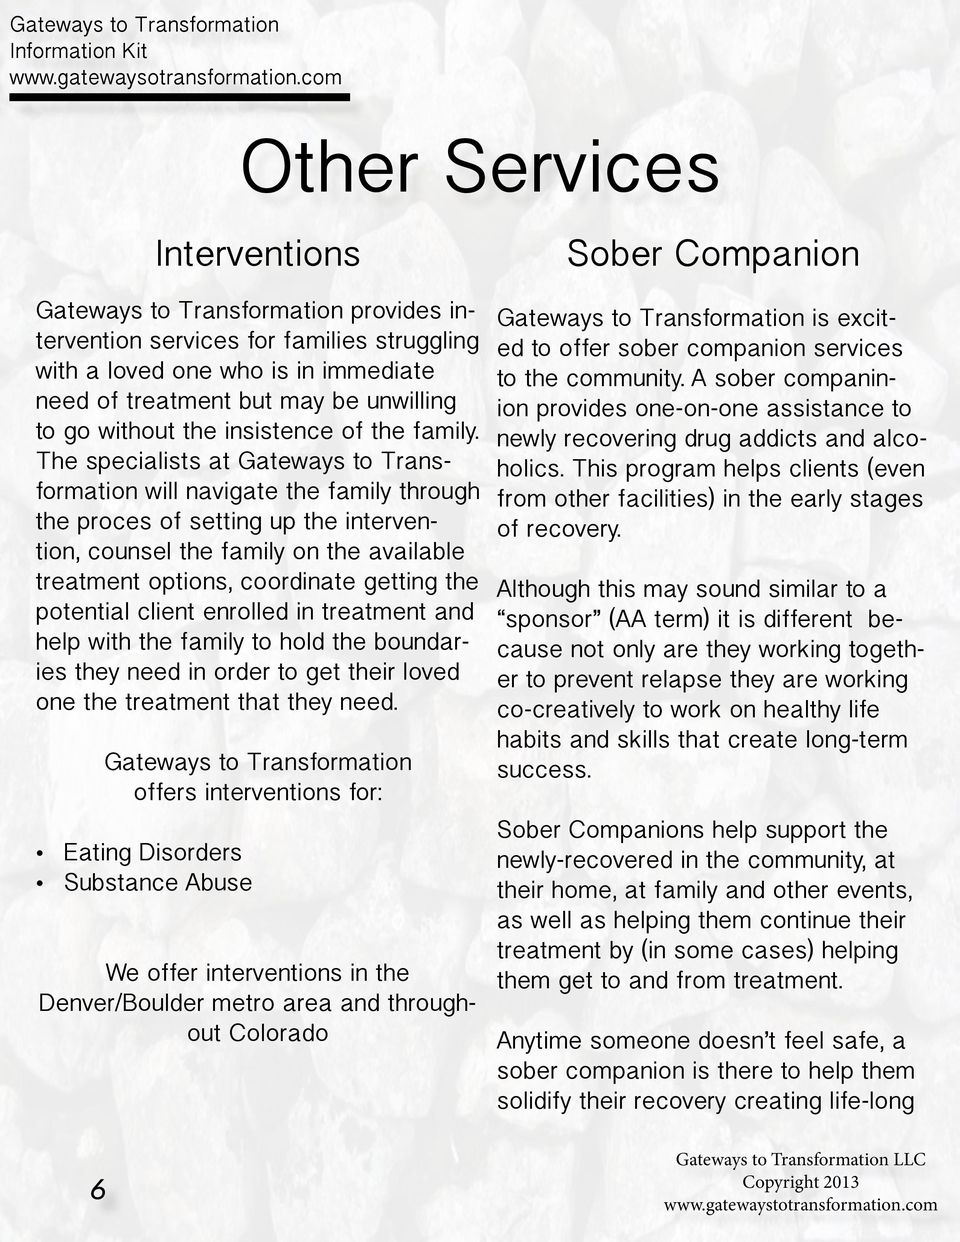 The specialists at Gateways to Transformation will navigate the family through the proces of setting up the intervention, counsel the family on the available treatment options, coordinate getting the